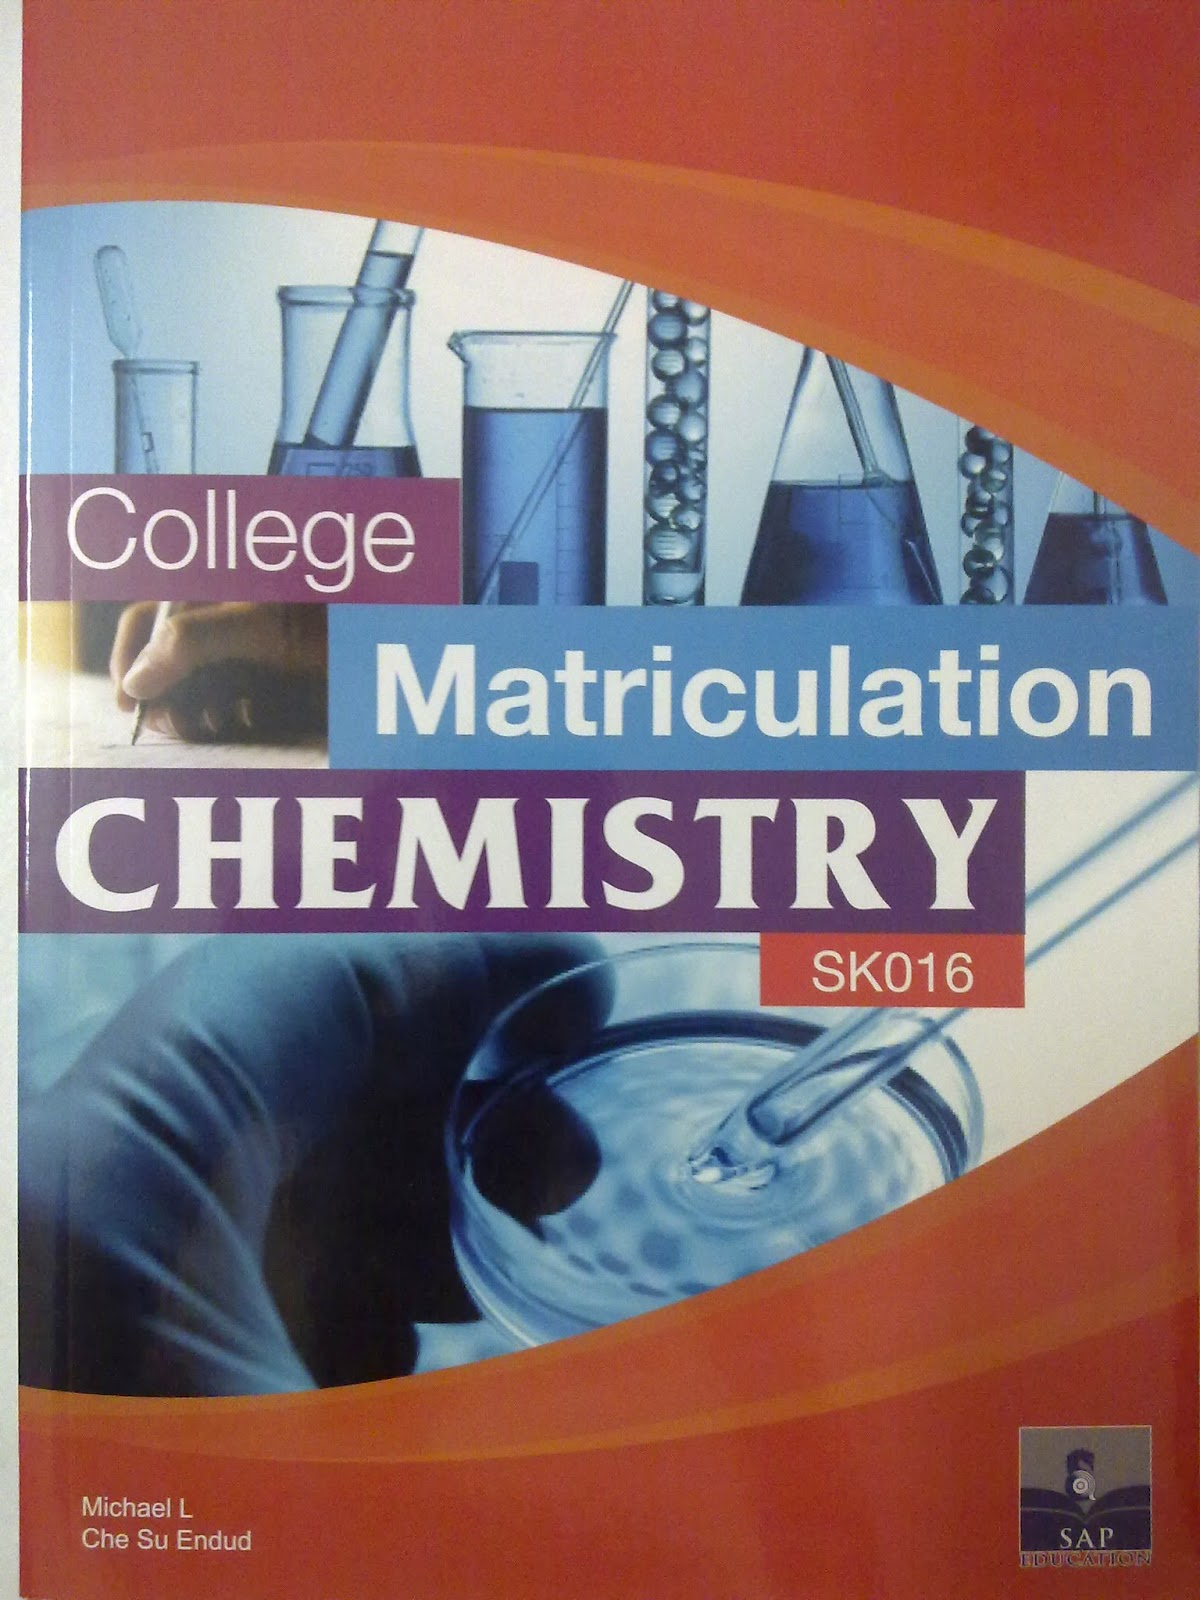 online chemistry problem solver online chemistry molarity  lookchemistry college matriculation chemistry sk016 this book contains simple clear and concise explanations plus comprehensive problem